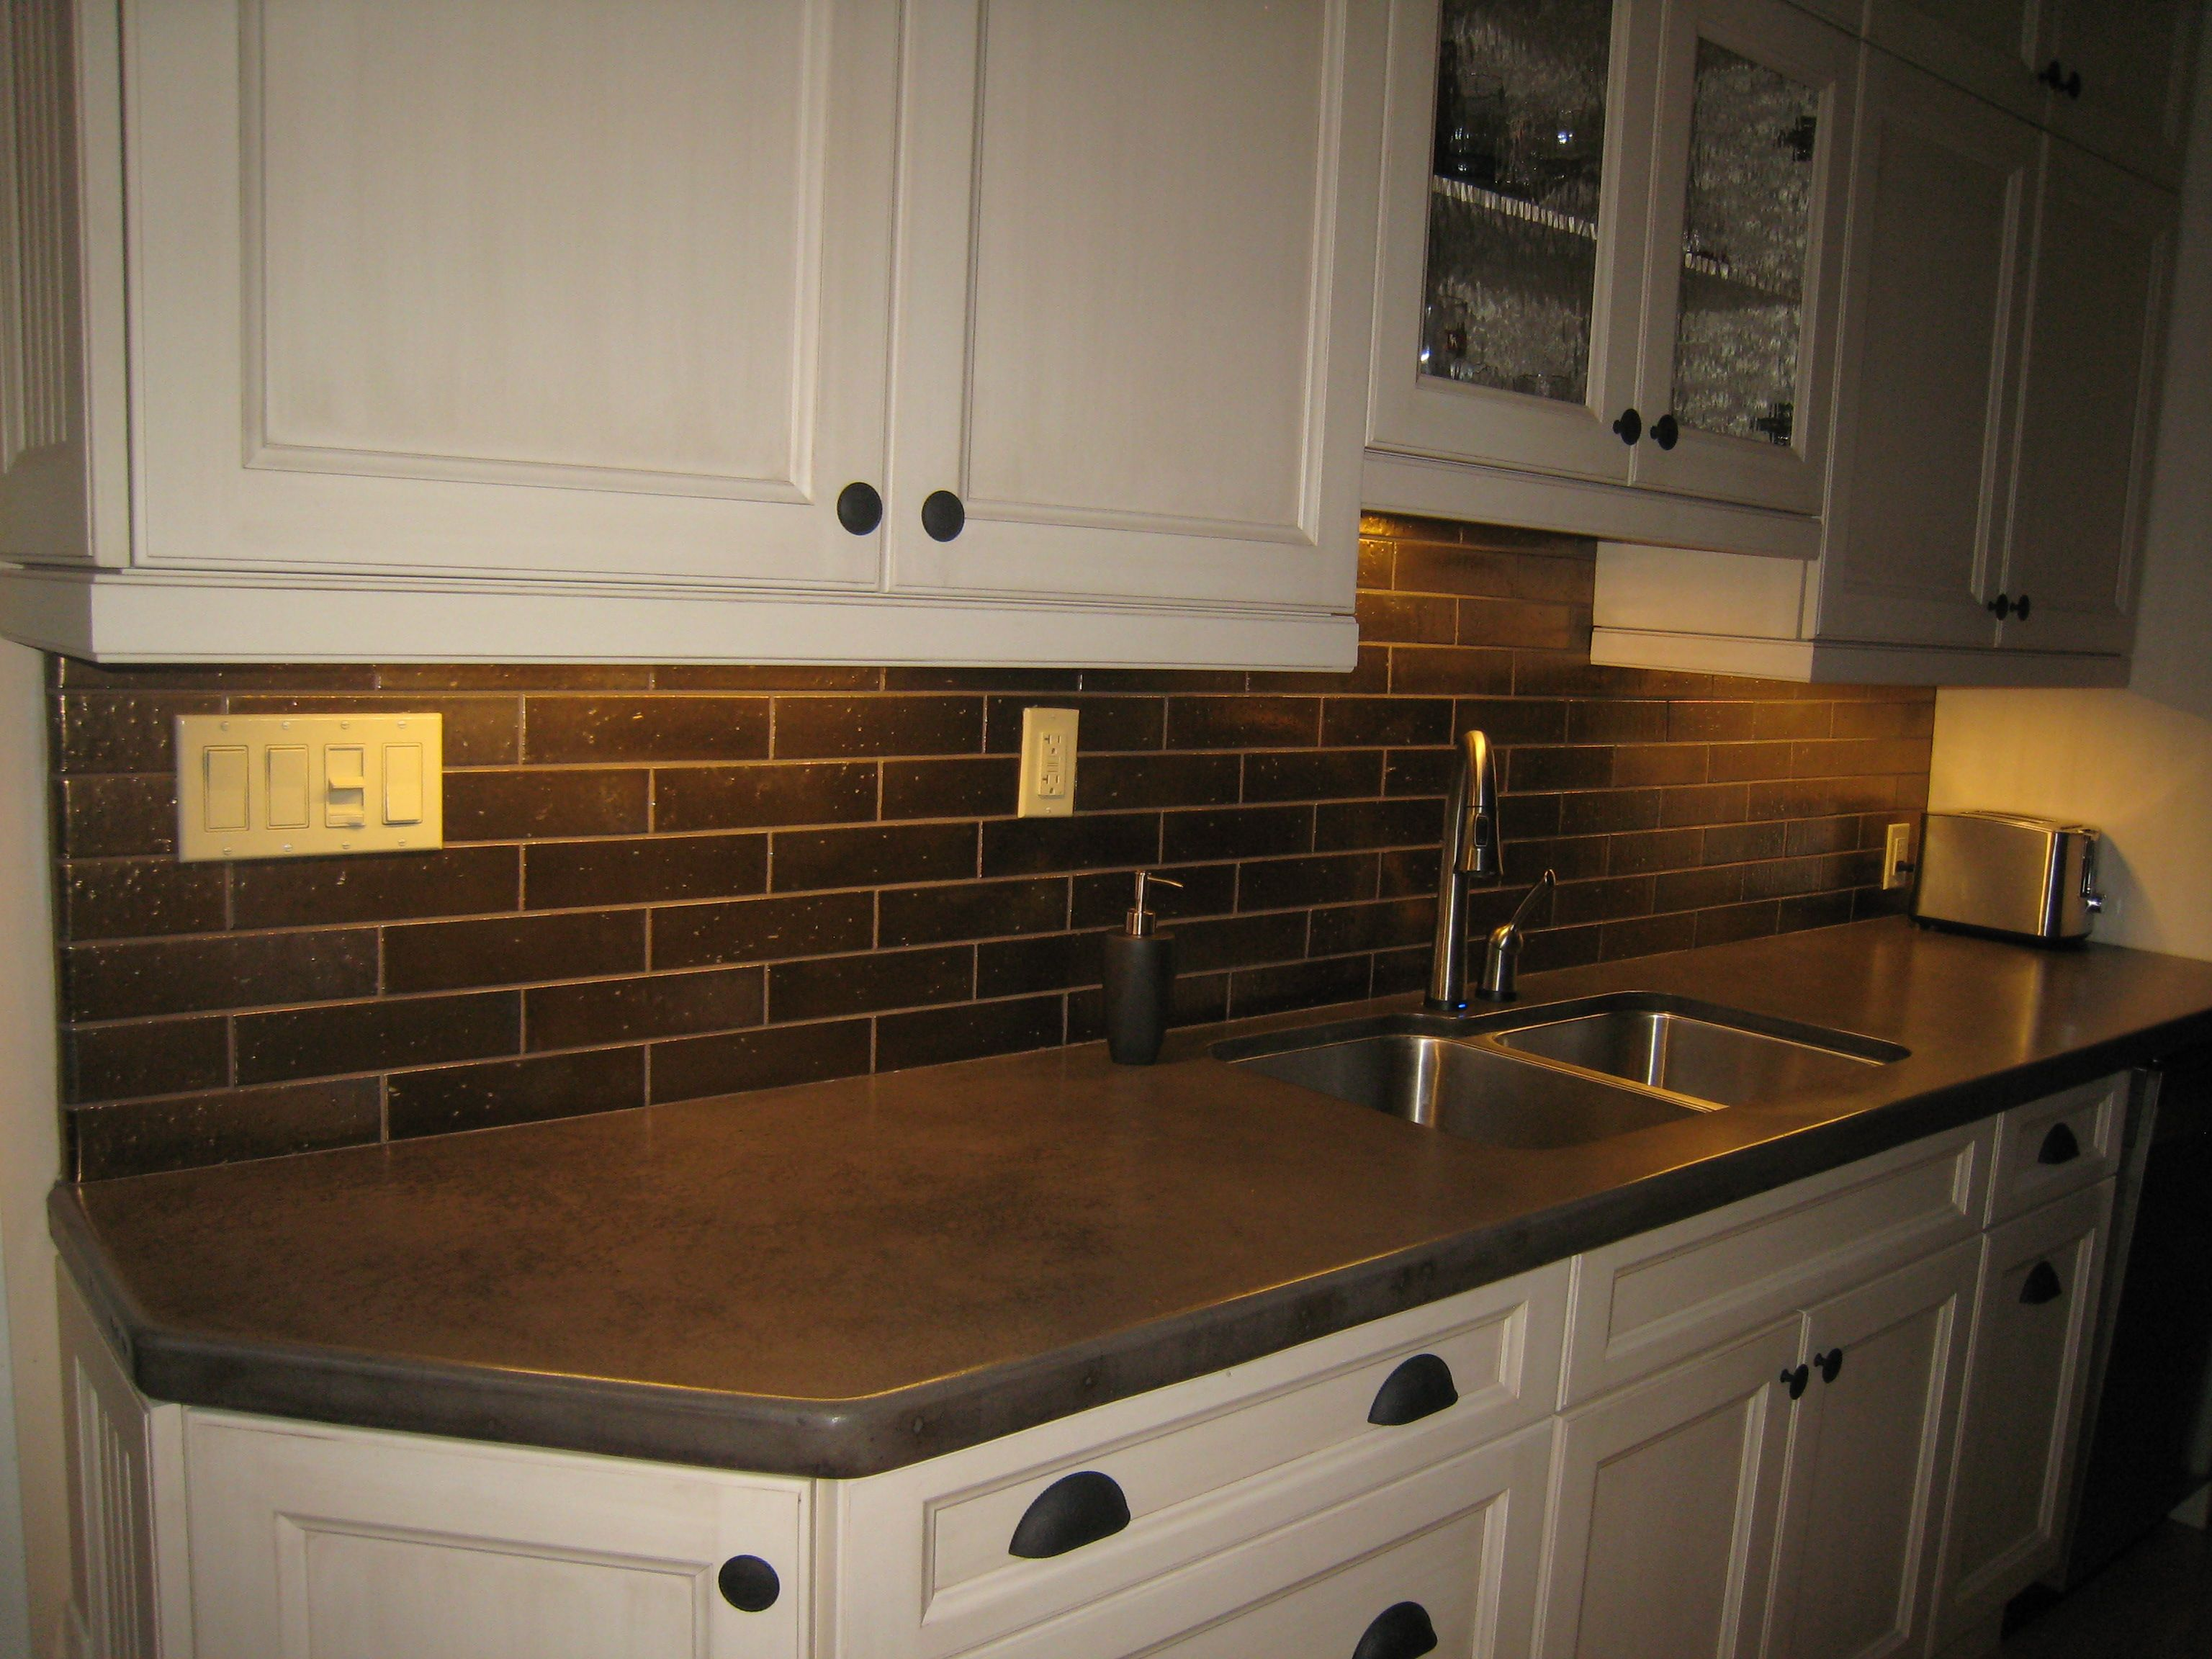 kitchen backsplash kitchen subway tile backsplash Interior Dark Stones Subway Brick Backsplash With White Cabinets As Well As Concrete Countertop Designs